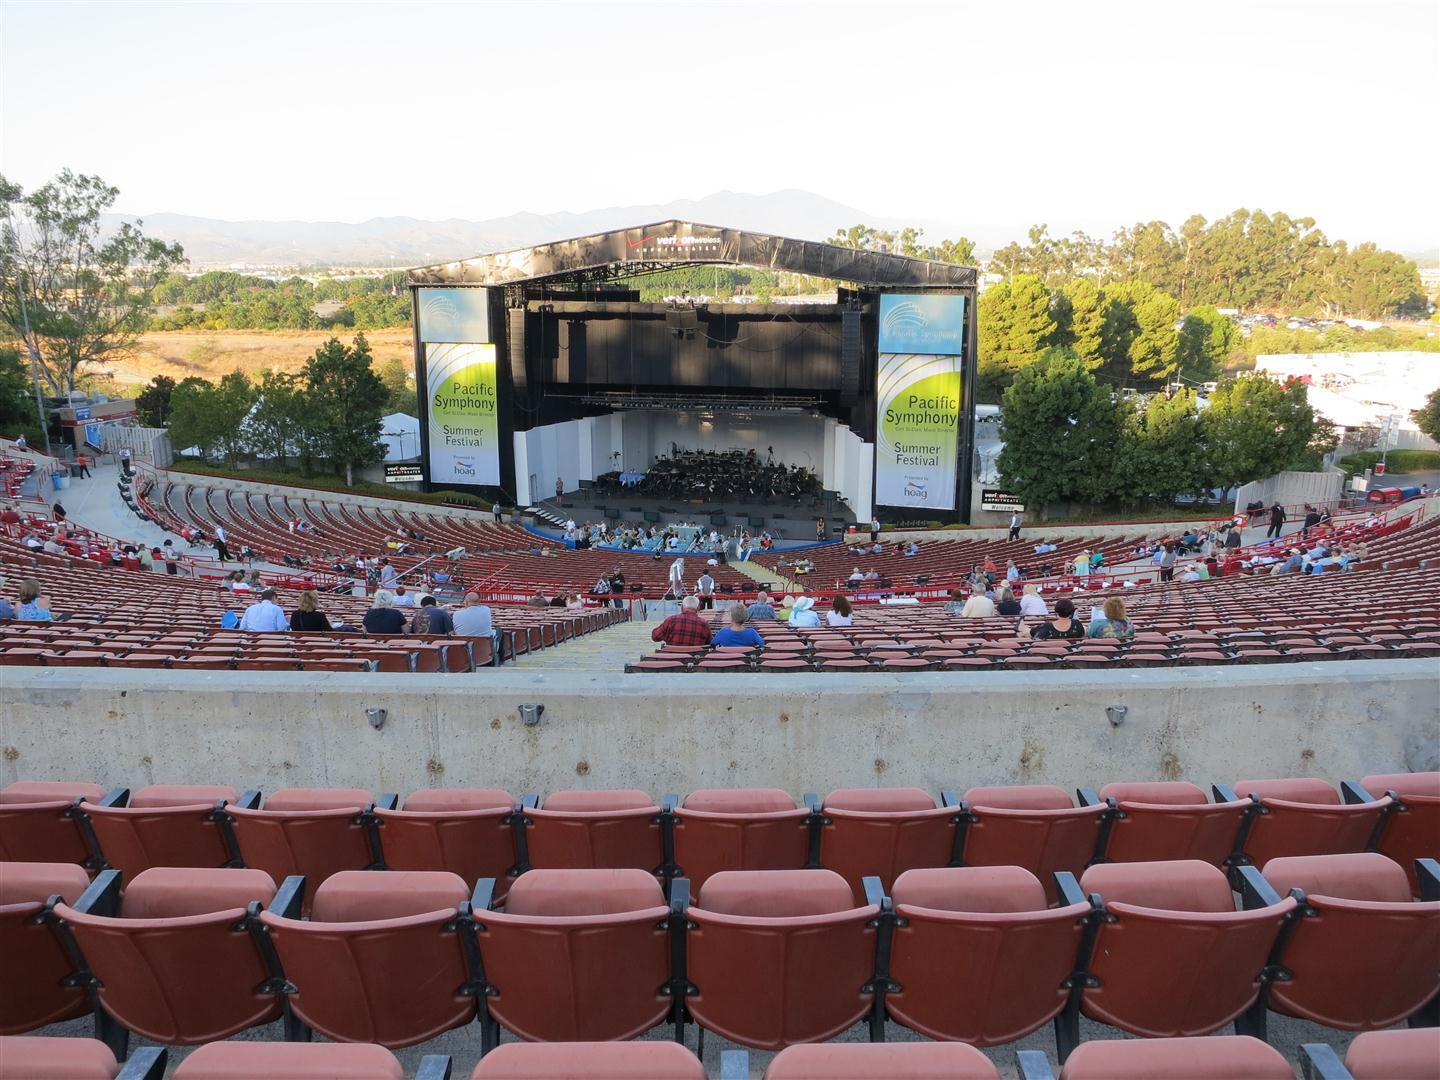 Offical spac 2016 page 634 forums for 35 view terrace irvine ca